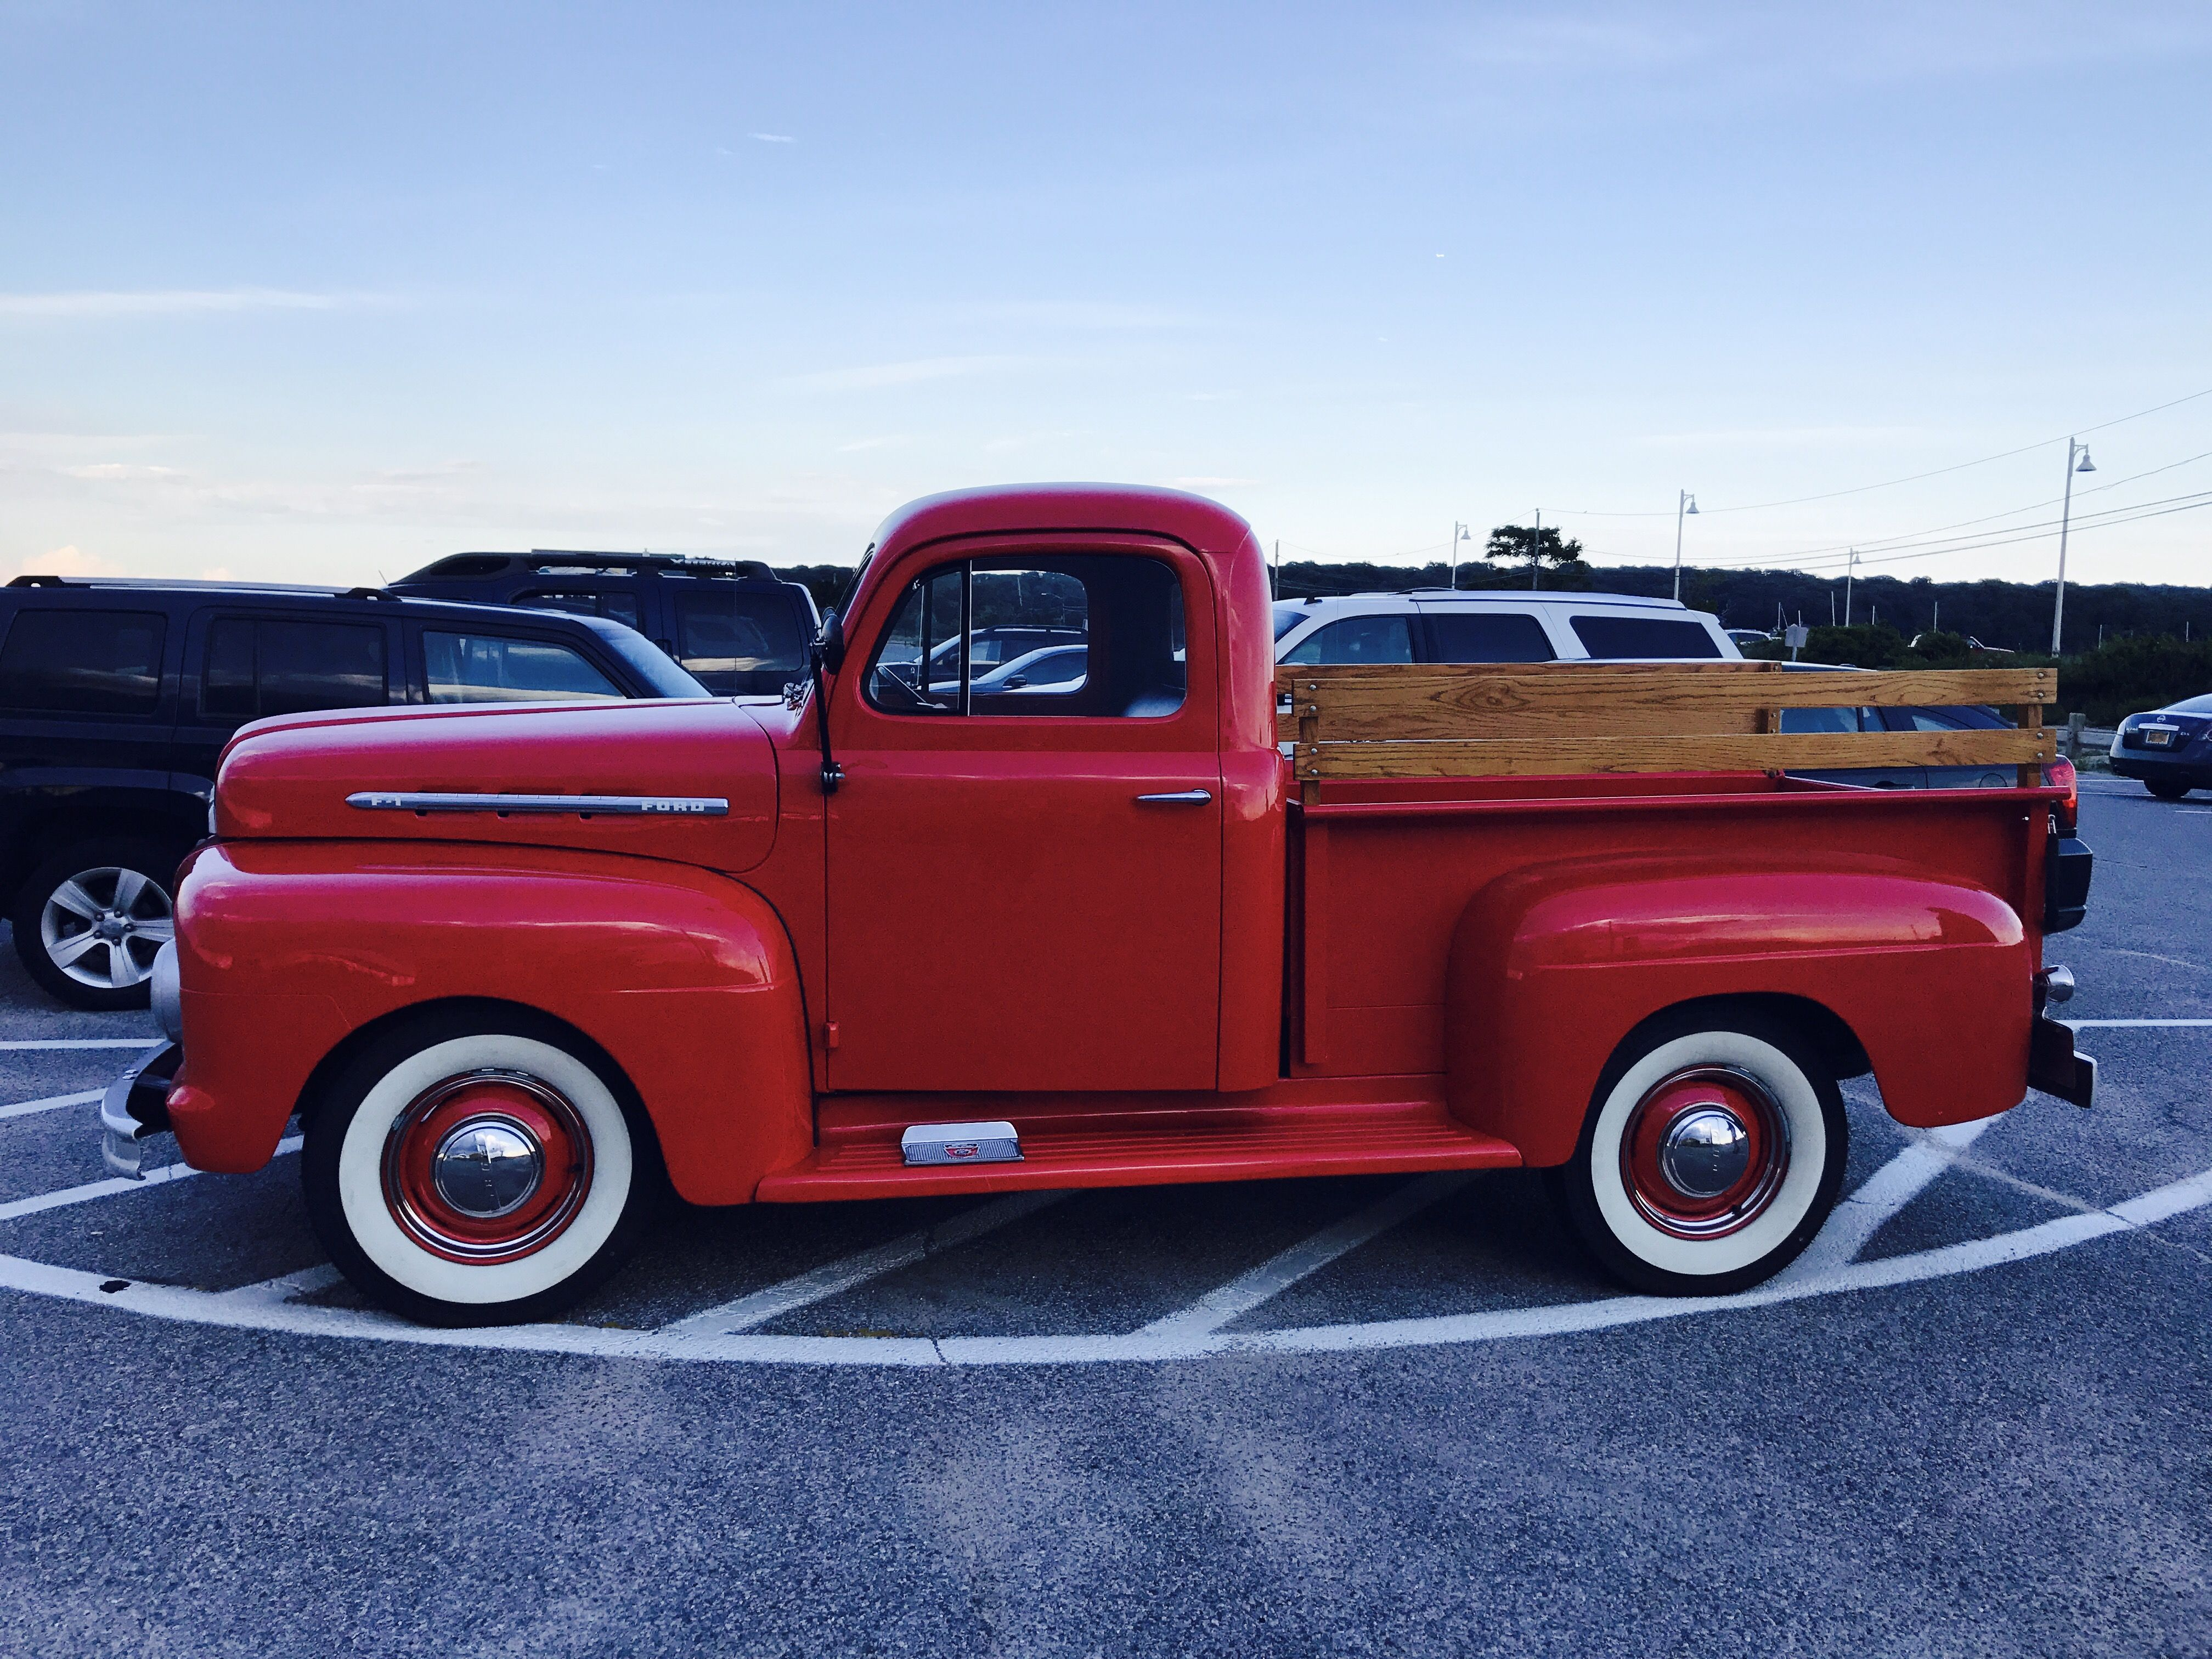 1951 Red Ford Stepside Pick Up Vintage Trucks Classic Cars